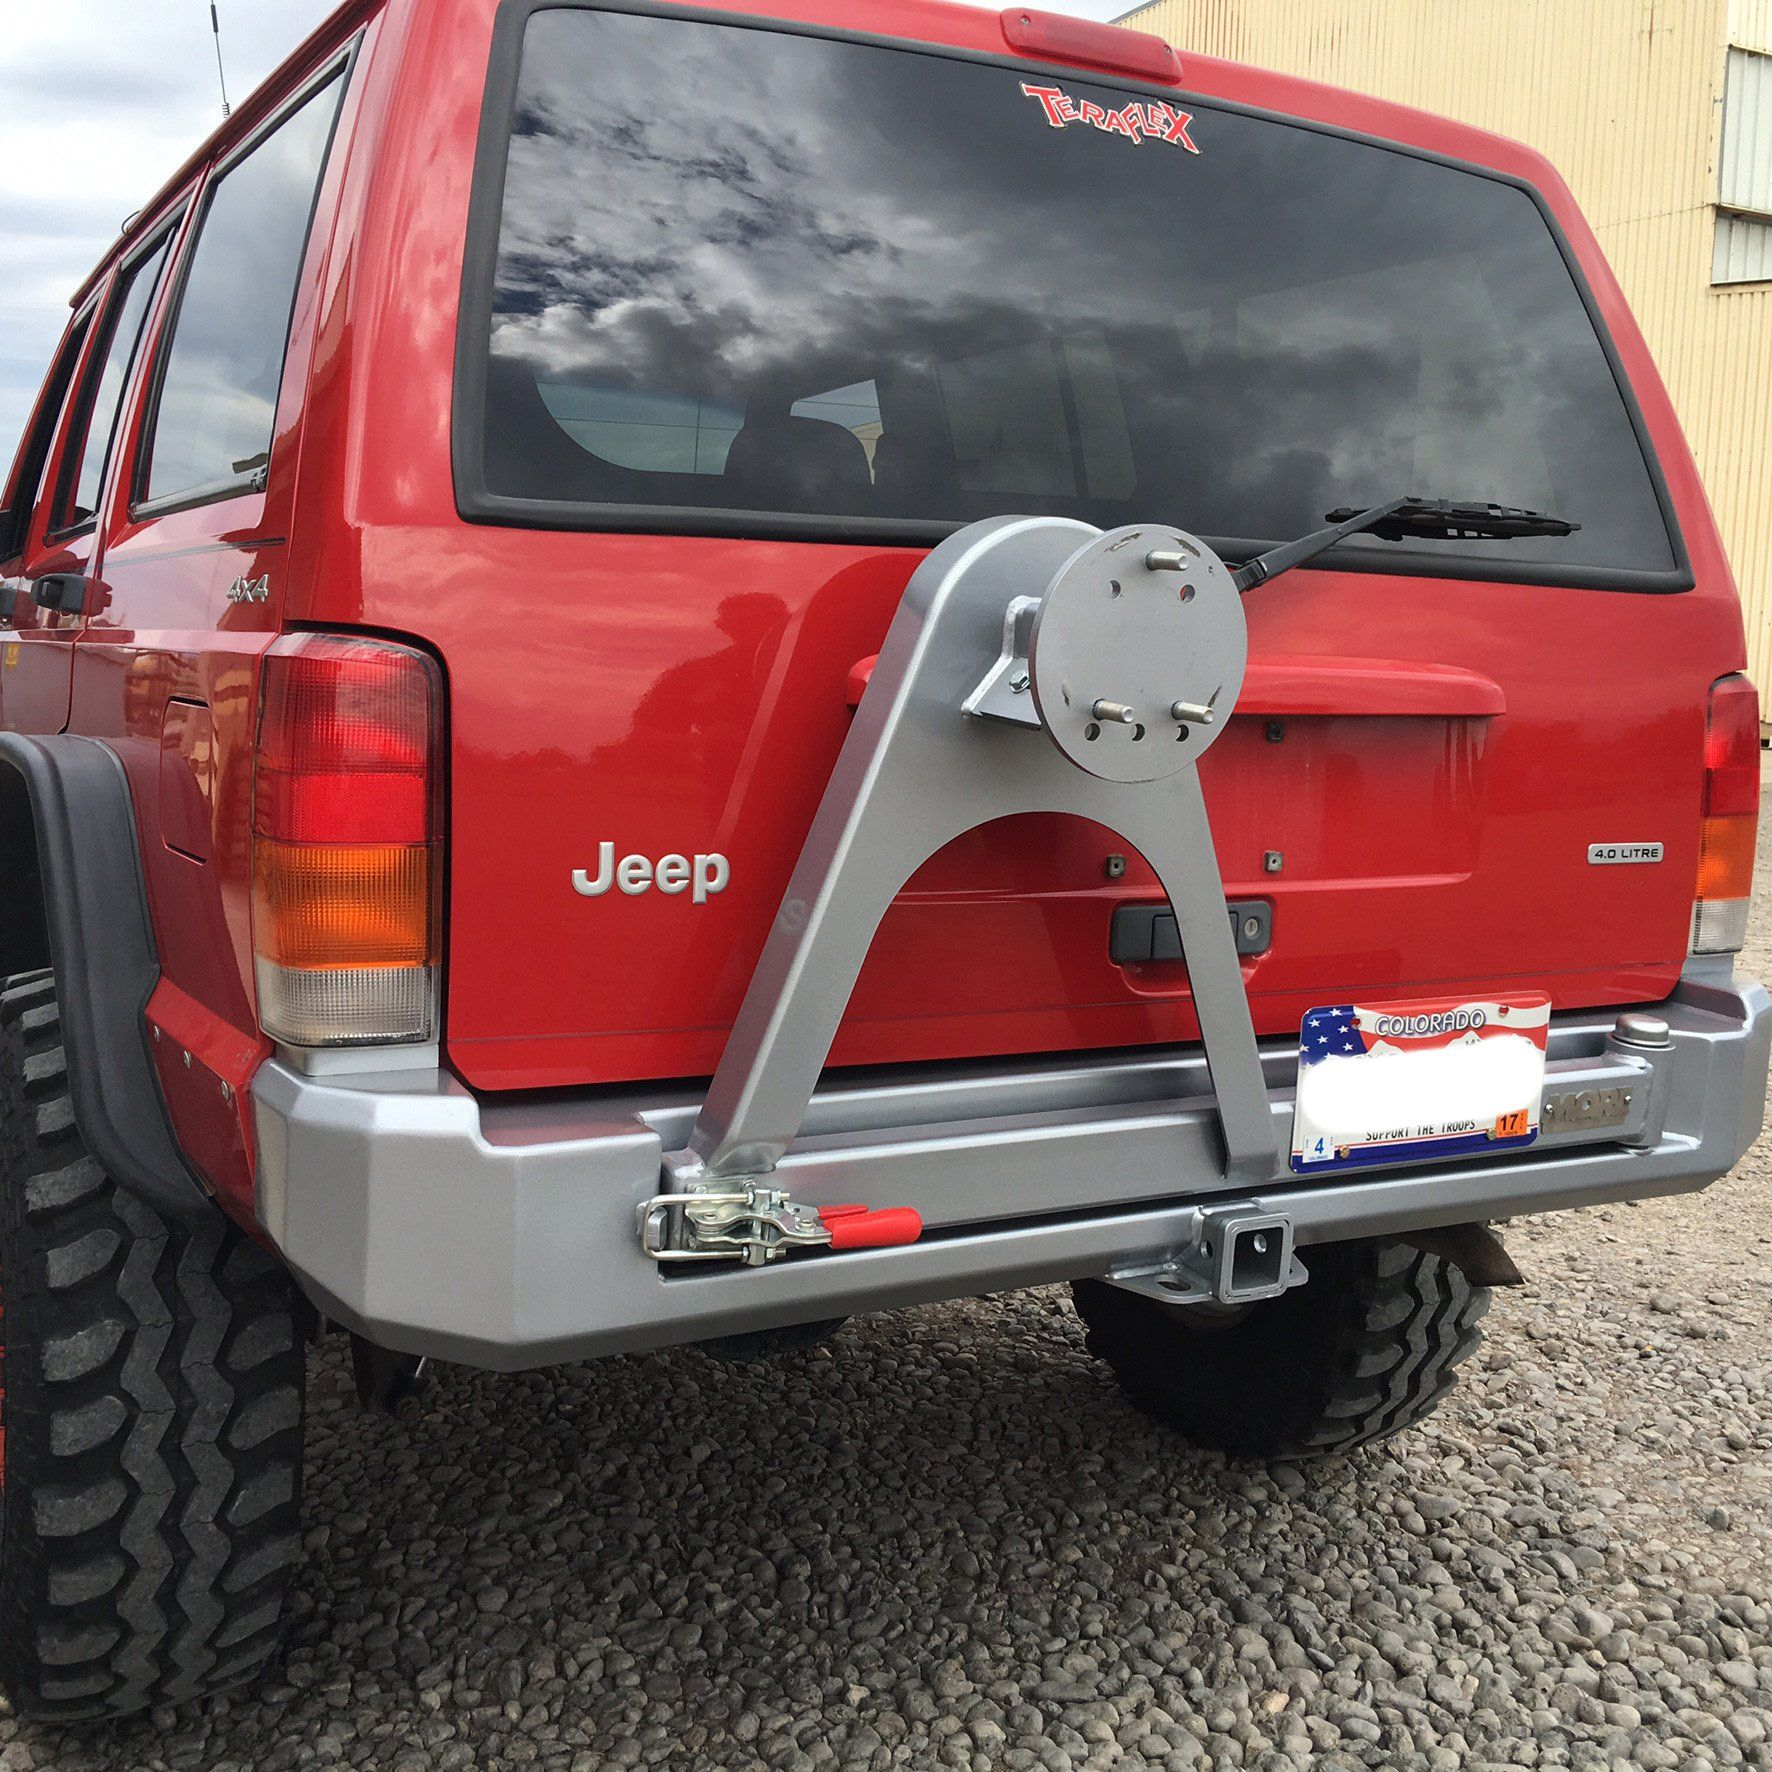 Rock Proof Rear Bumper With Tire Carrier 84 01 Xj Jeep Xj